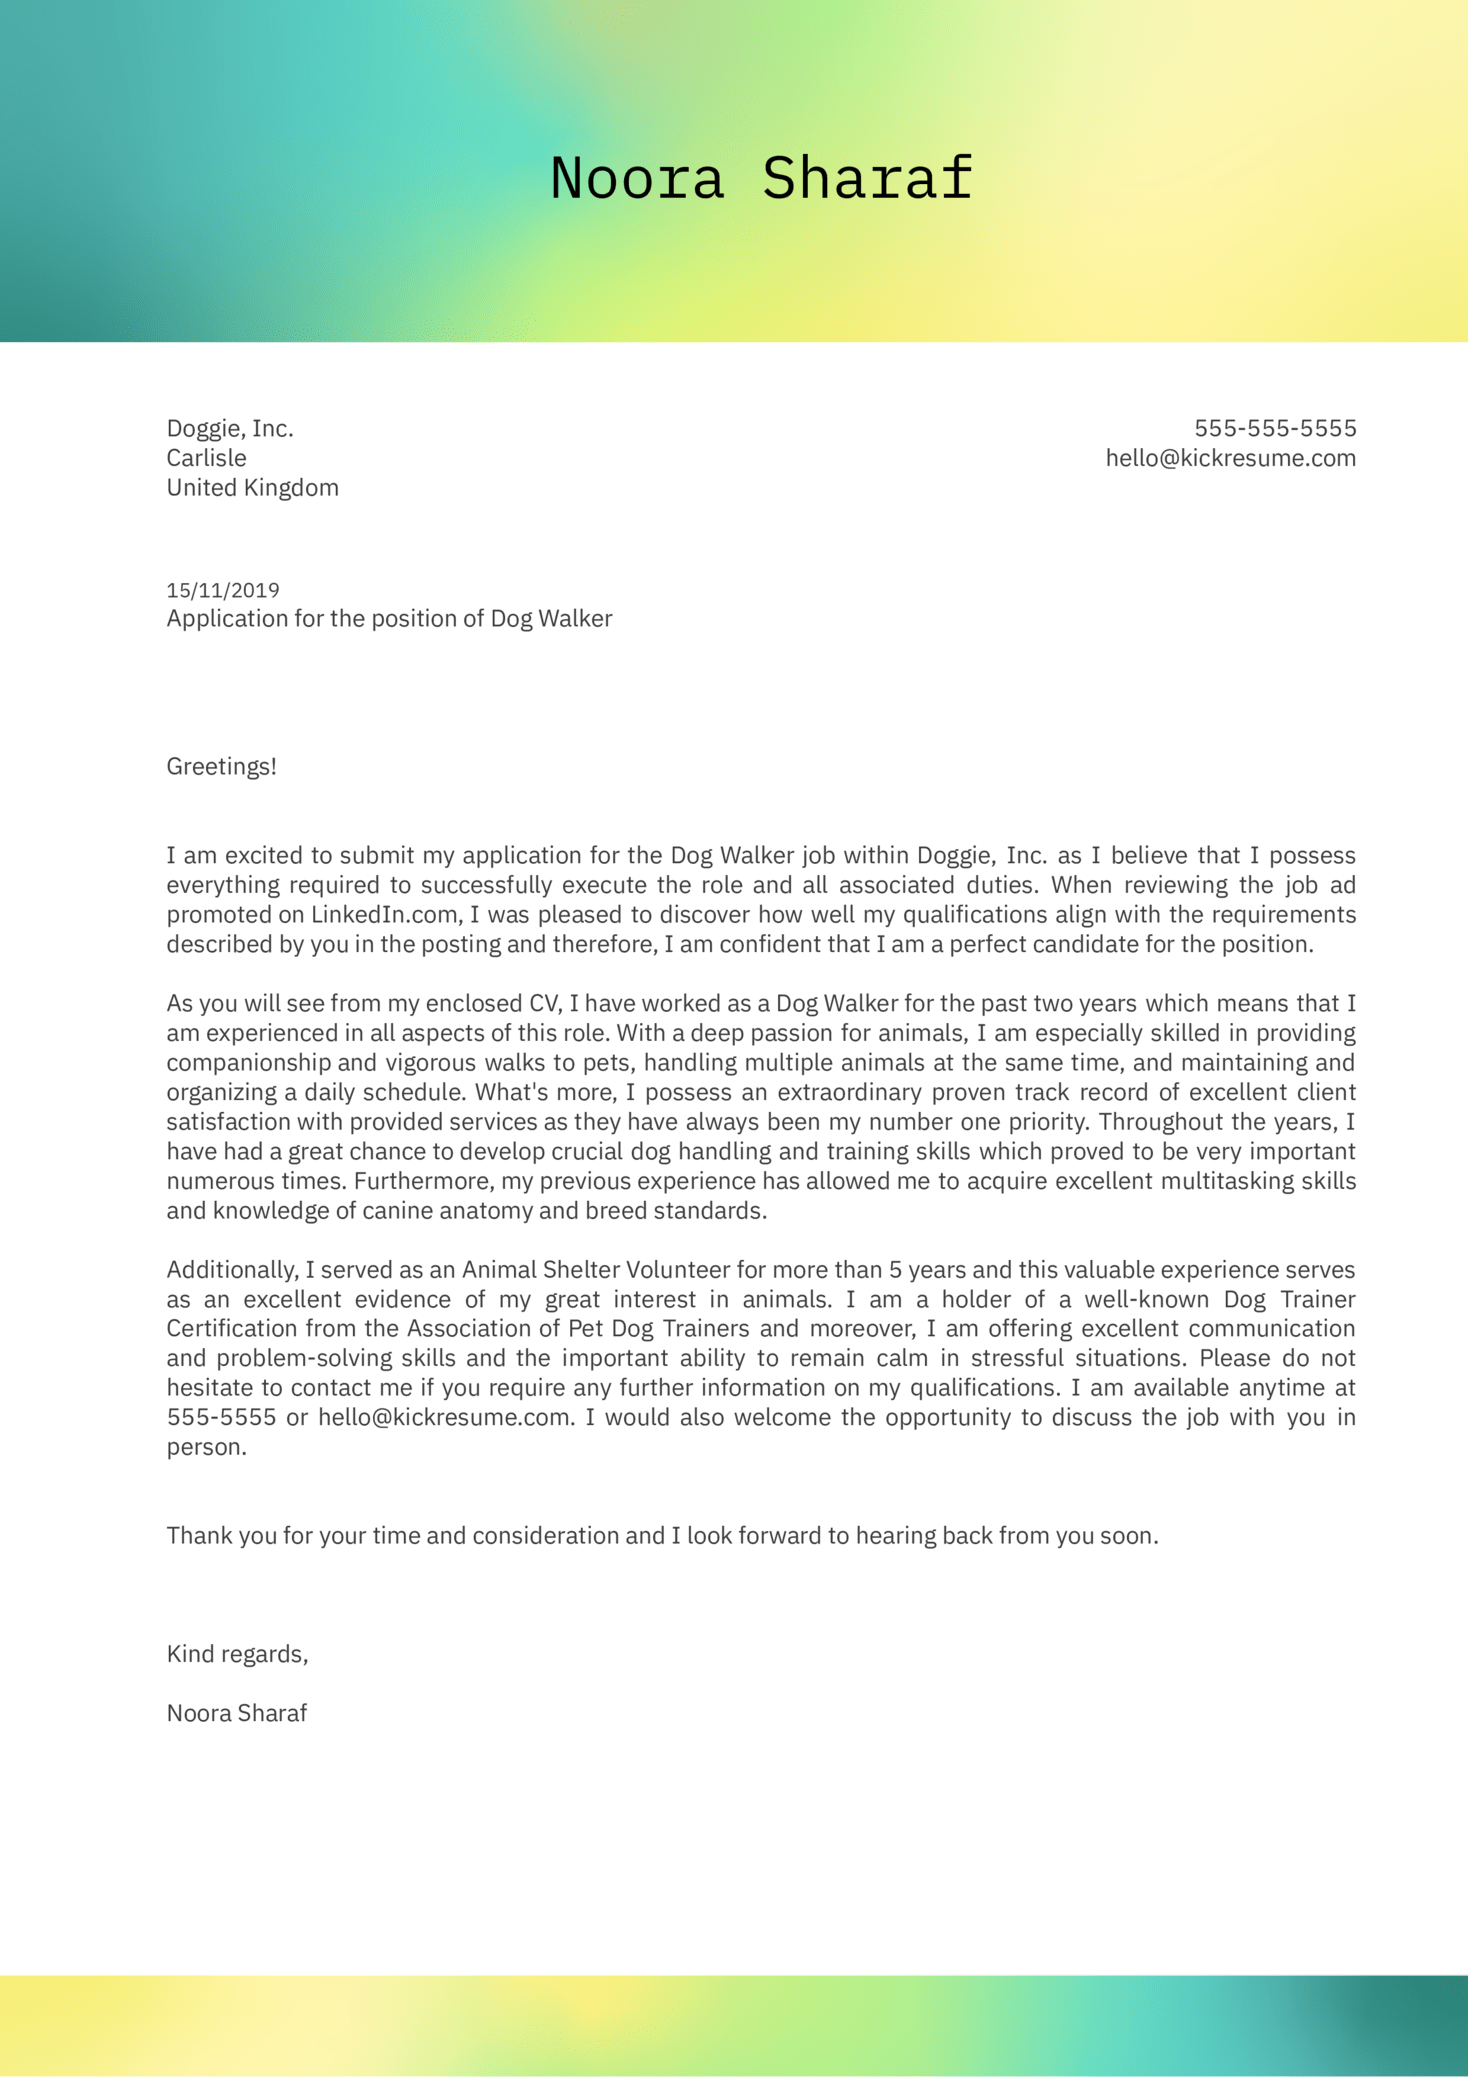 Dog Walking Cover Letter Example